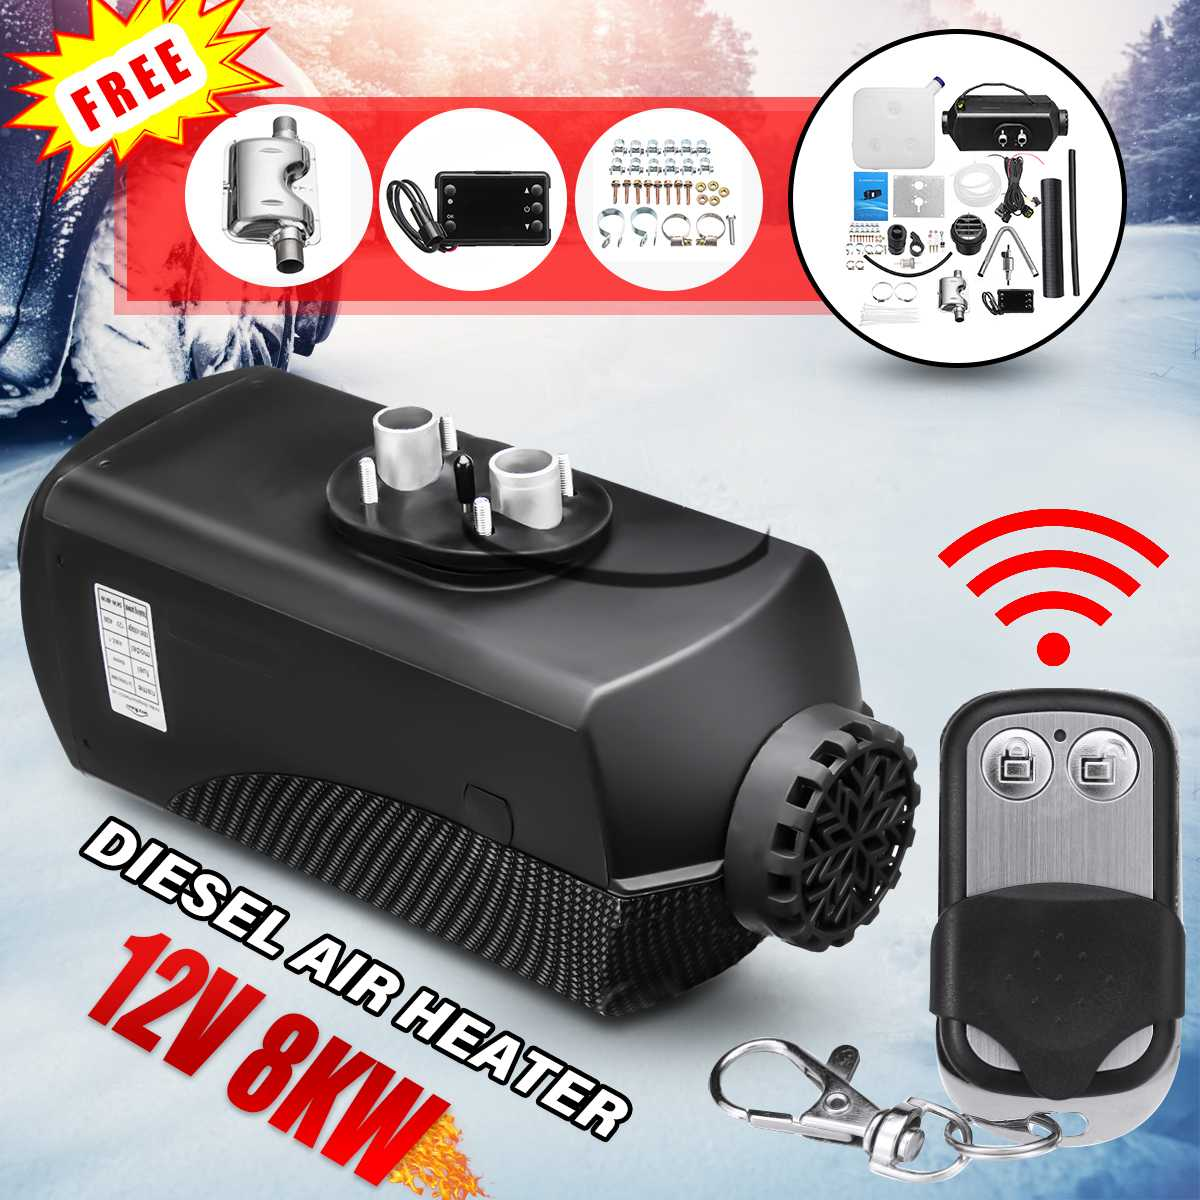 12V 8000W 8KW Diesels Fuel Air Heater w/Remote Control LCD Monitor Thermostat For Truck Boat Car Auto Trailer Inside Air Warming12V 8000W 8KW Diesels Fuel Air Heater w/Remote Control LCD Monitor Thermostat For Truck Boat Car Auto Trailer Inside Air Warming